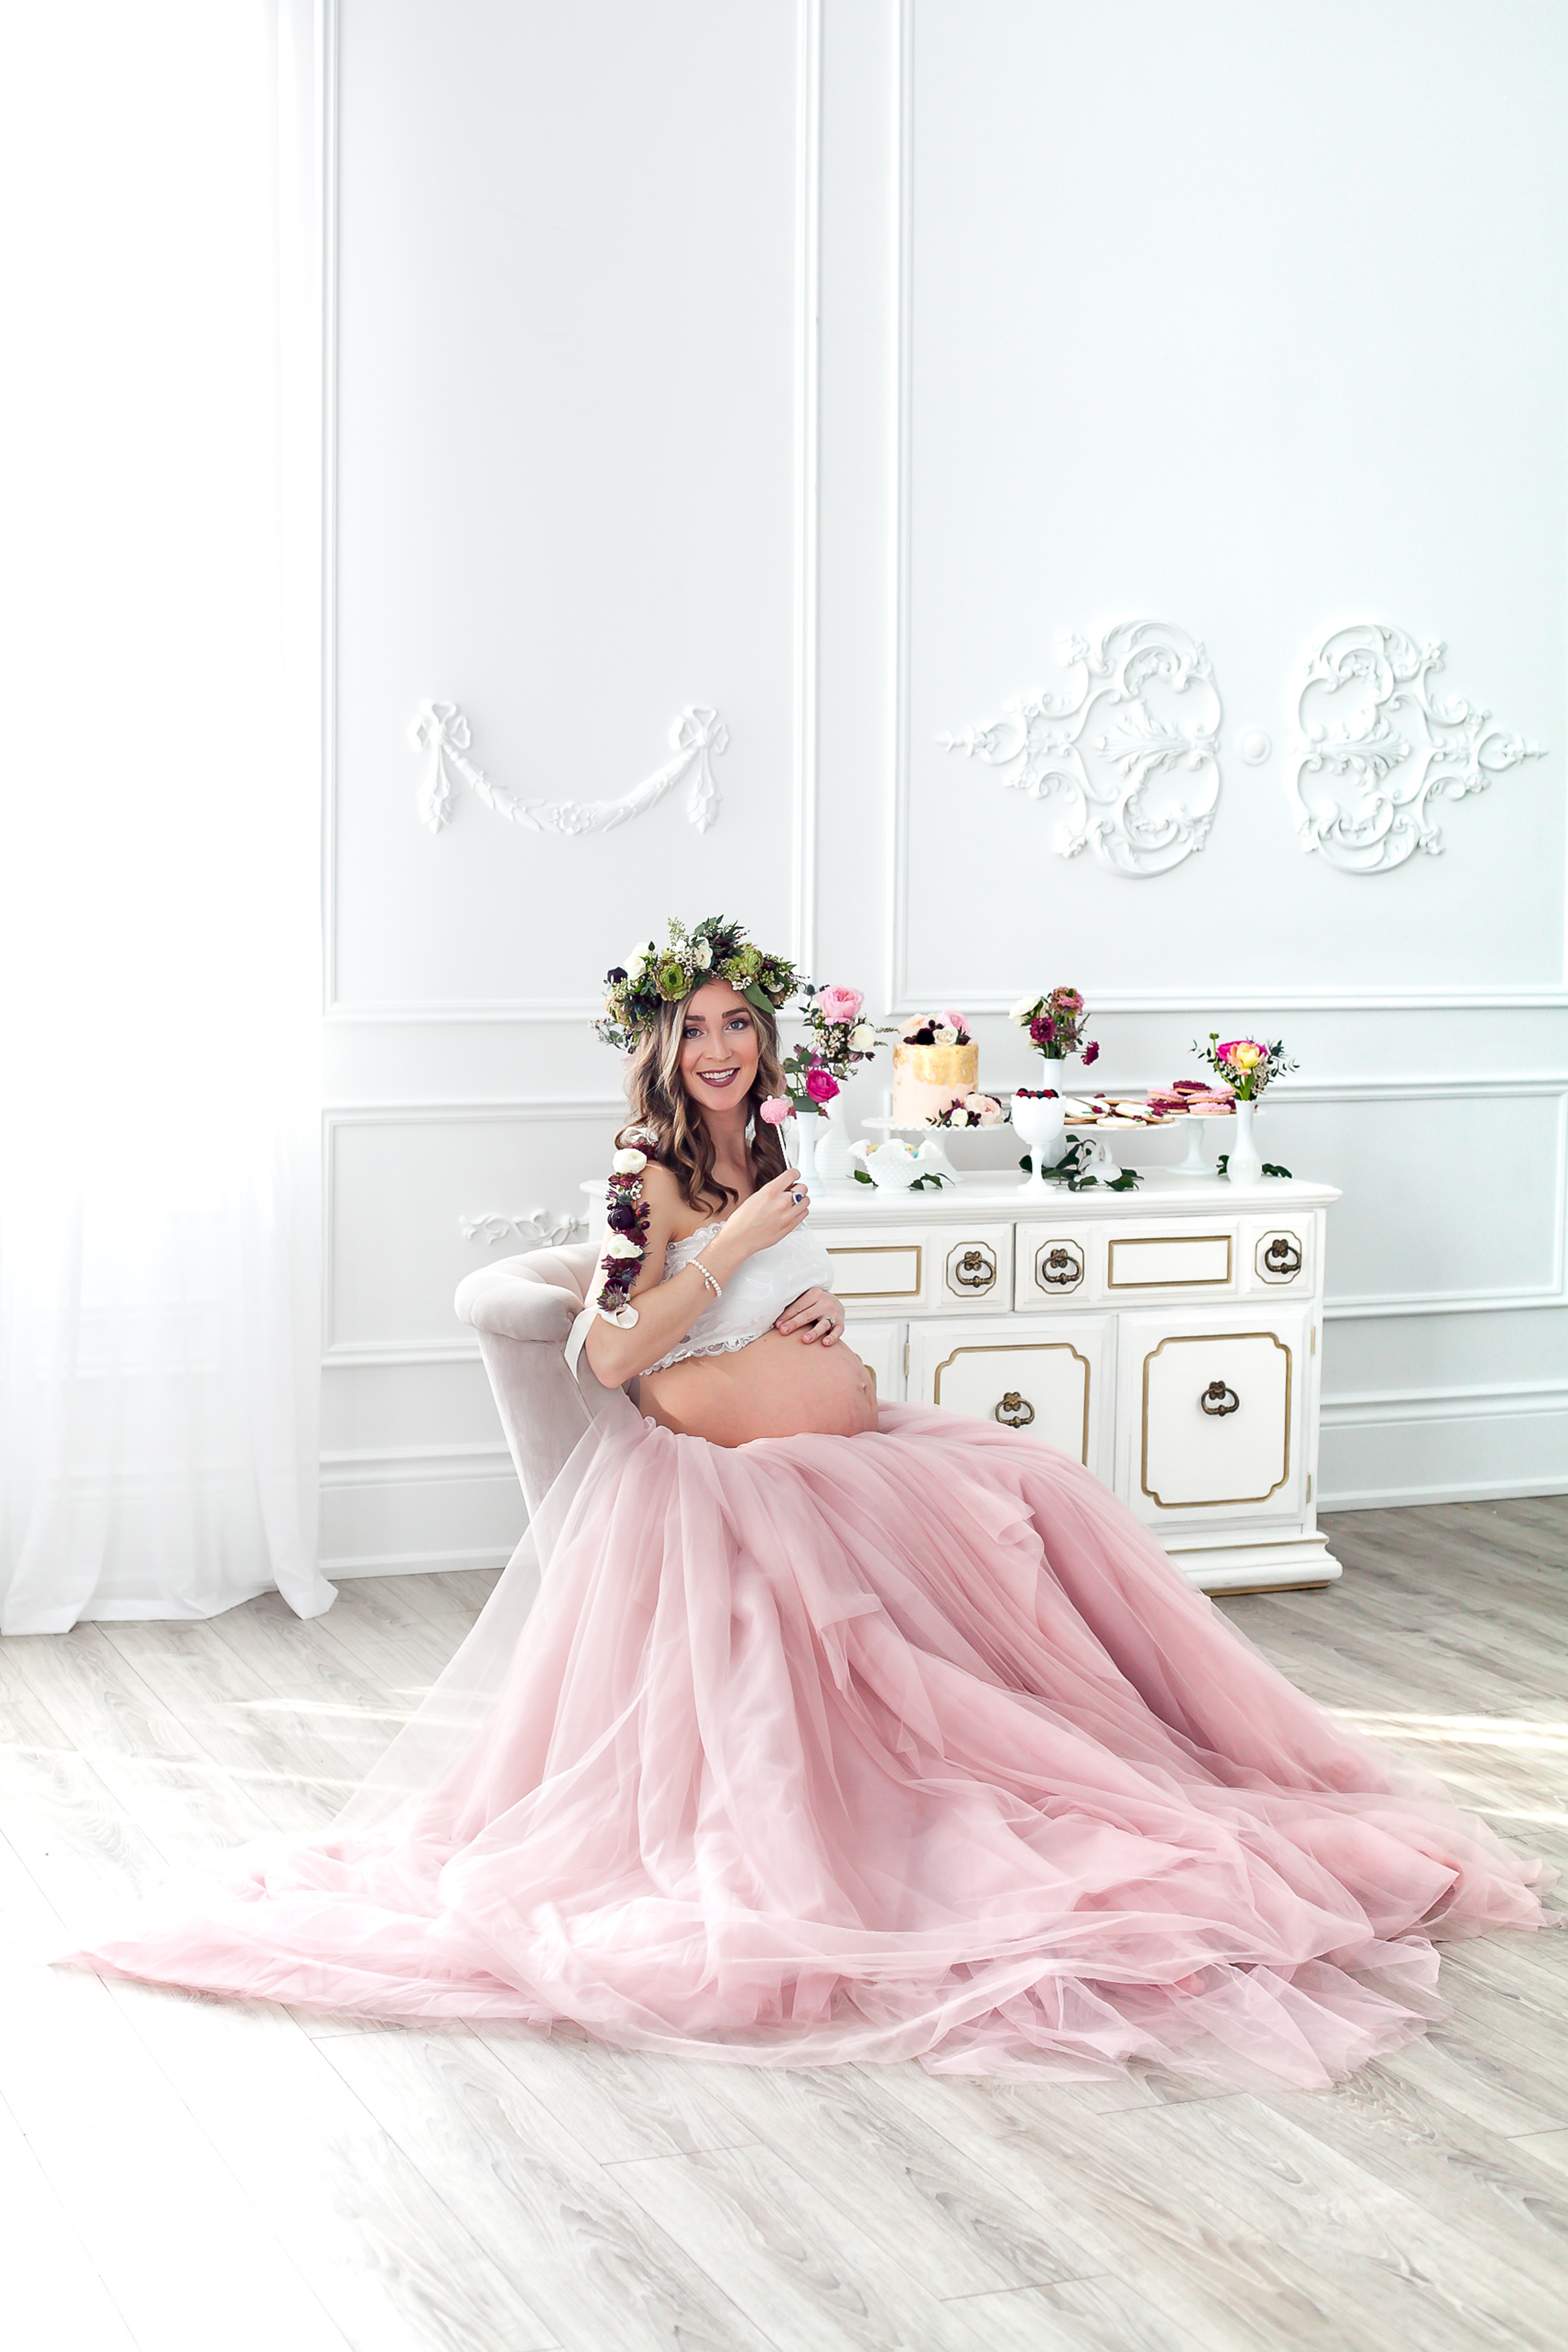 Toronto_Oshawa_Ultimate_Maternity_Event_Flowers_Sweet_Table_Petra_King_Photography